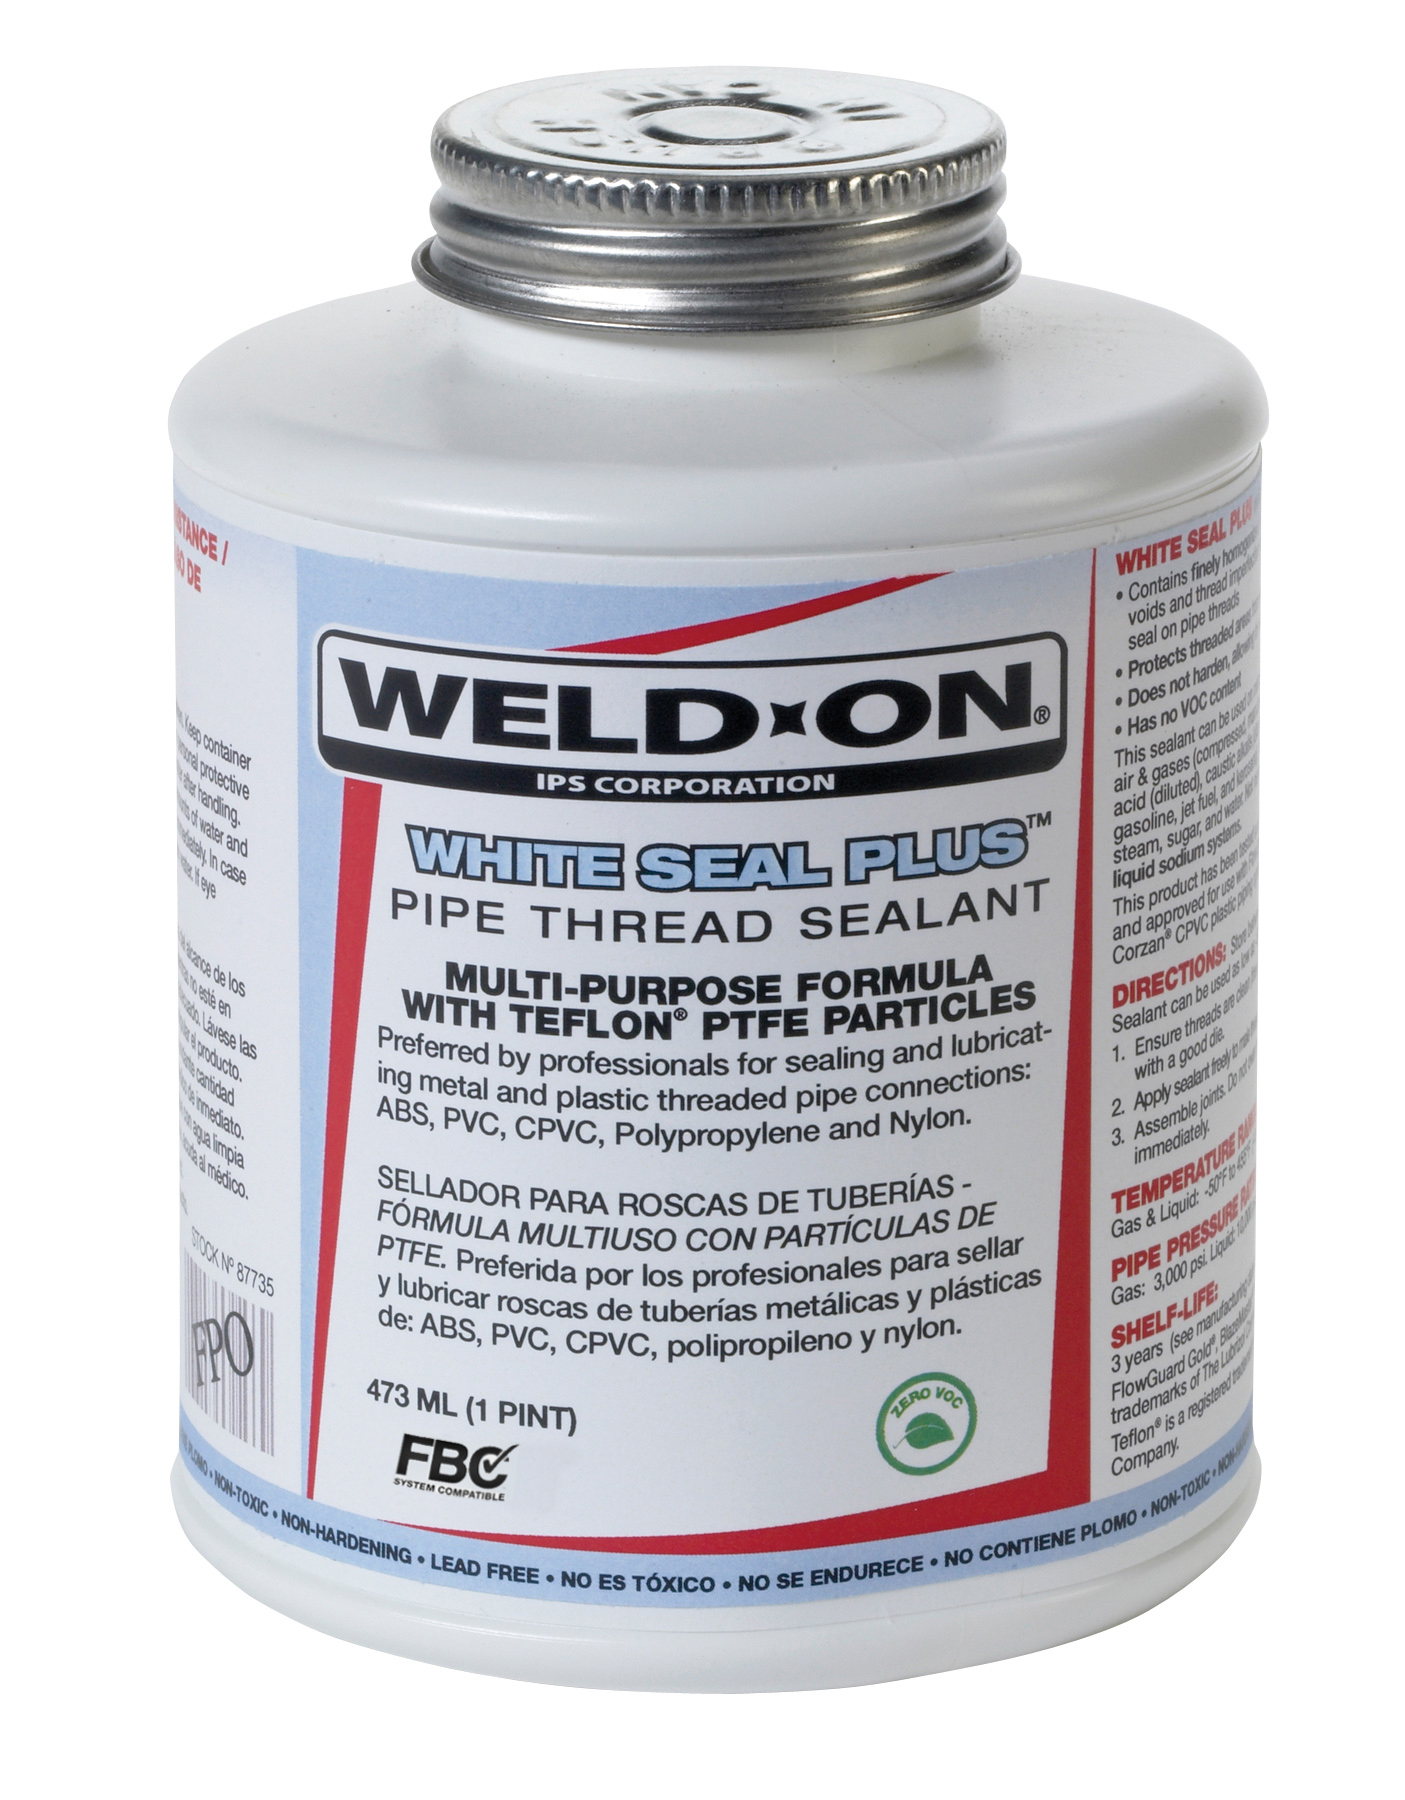 Weld-On WHITE SEAL PLUS White Plastic and Metal Pipe Thread Sealant, 1/4 Pt. Can with Brush in Cap Applicator